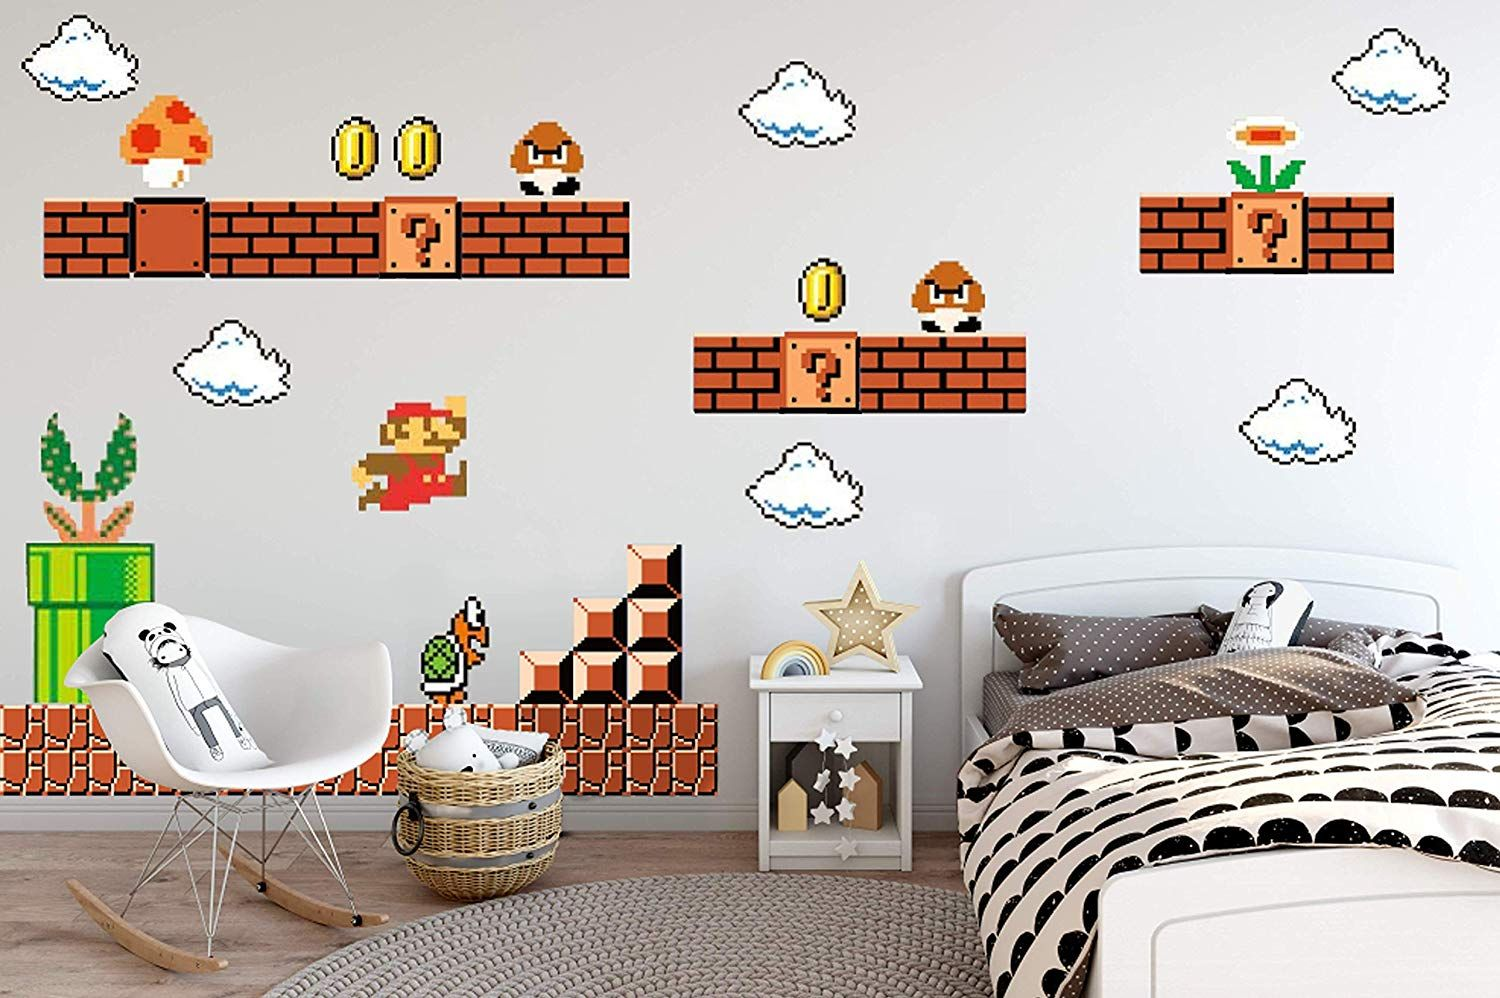 21 Lovely Mario Wall Decal Interior Design Samples (With